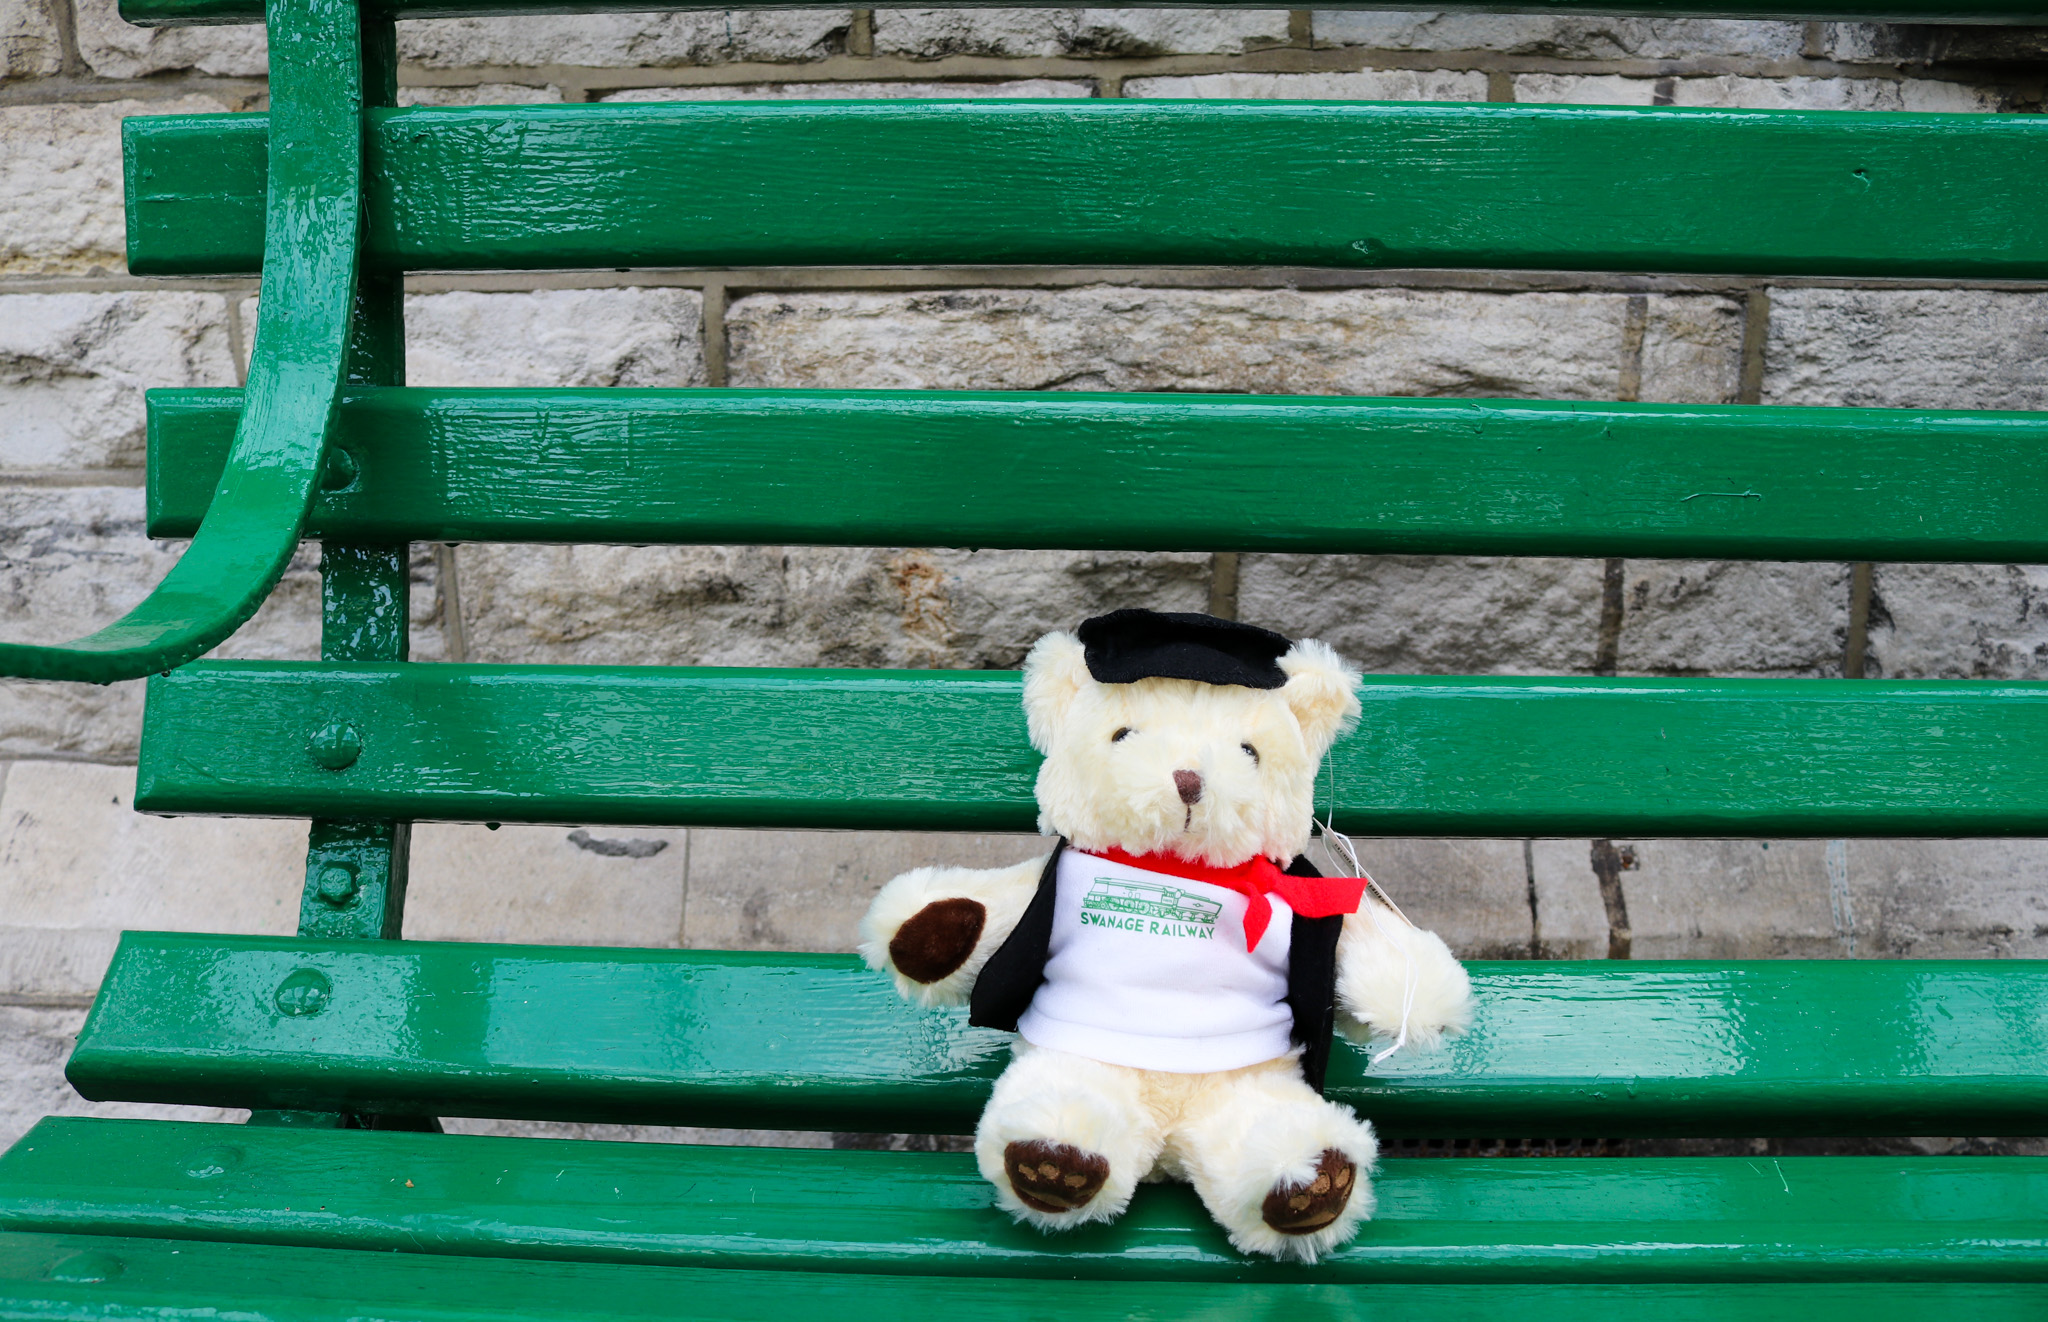 Swanage railway teddy bear sitting on bench